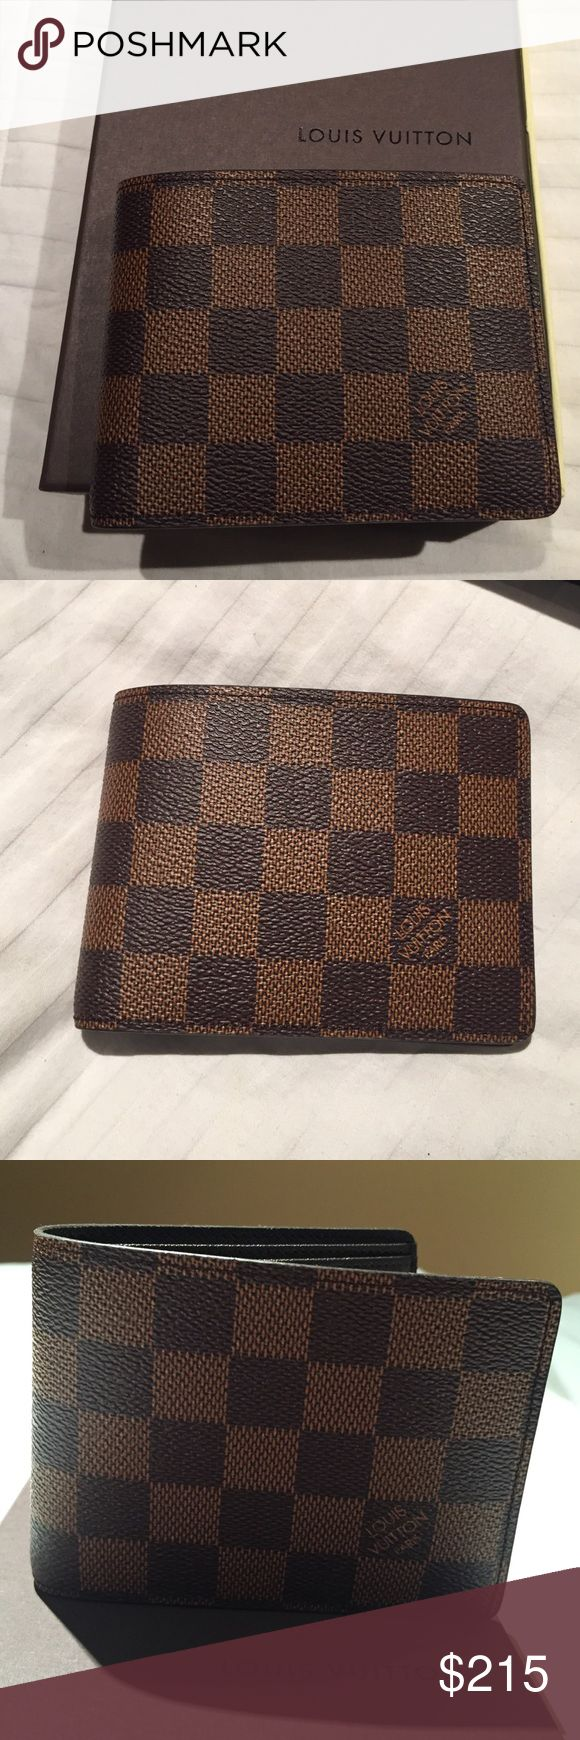 Louis Vuitton Damier Ebene Canvas men's wallet Brand new. Never used! Authentic! Has date code. Comes with box and dust bag. Louis Vuitton Accessories